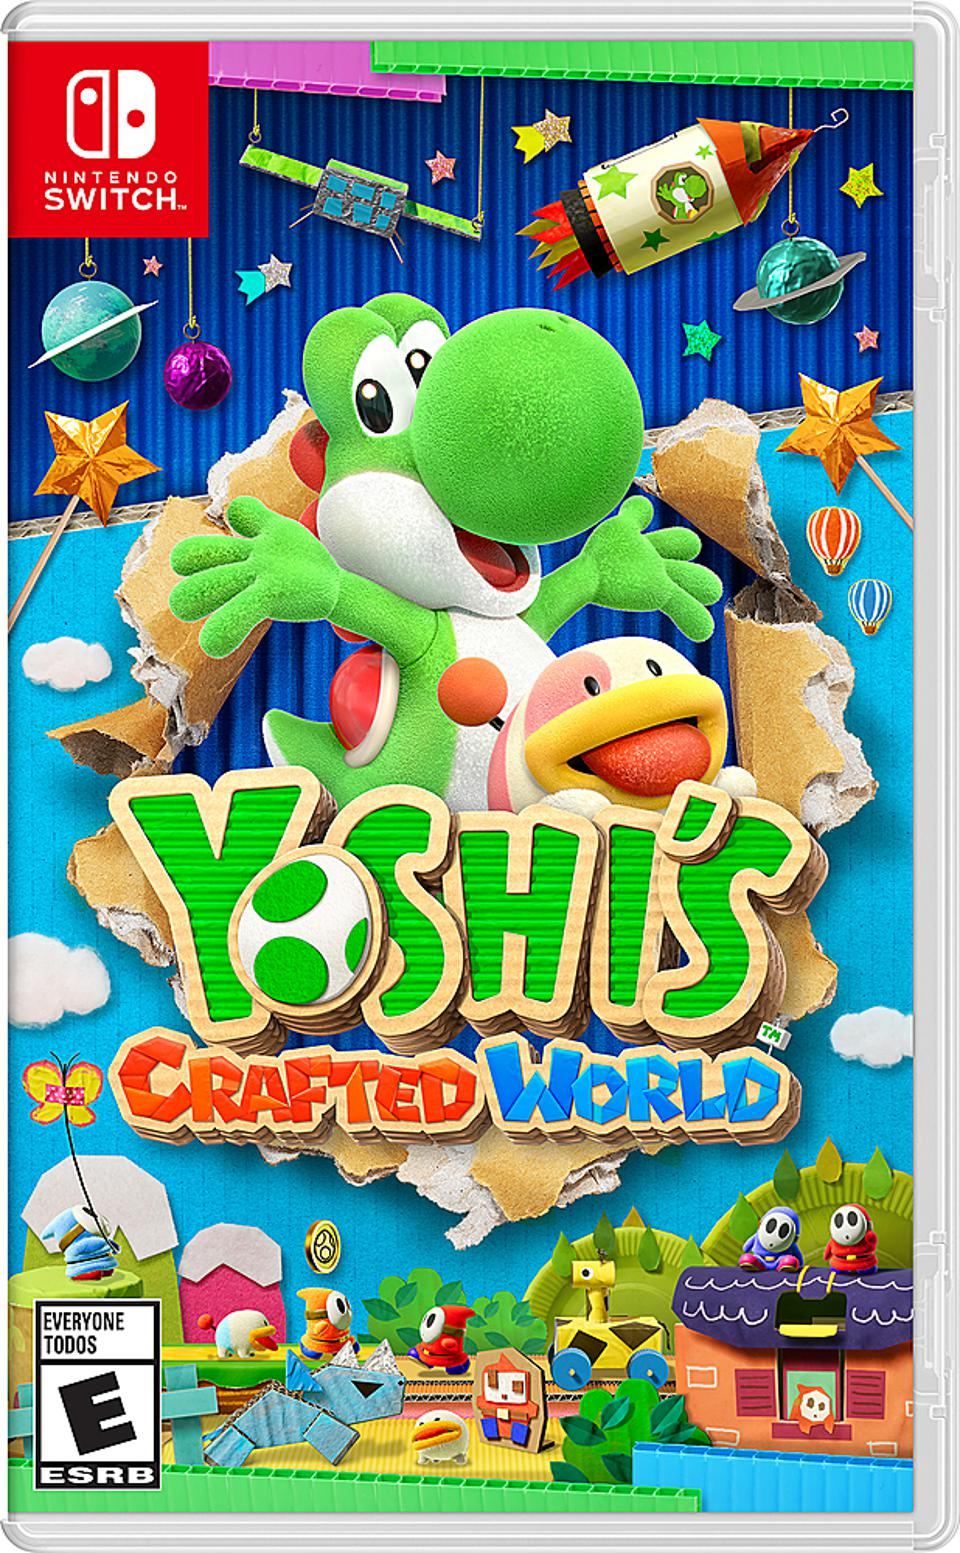 Yoshi's Crafted World for Nintendo Switch retail packaging